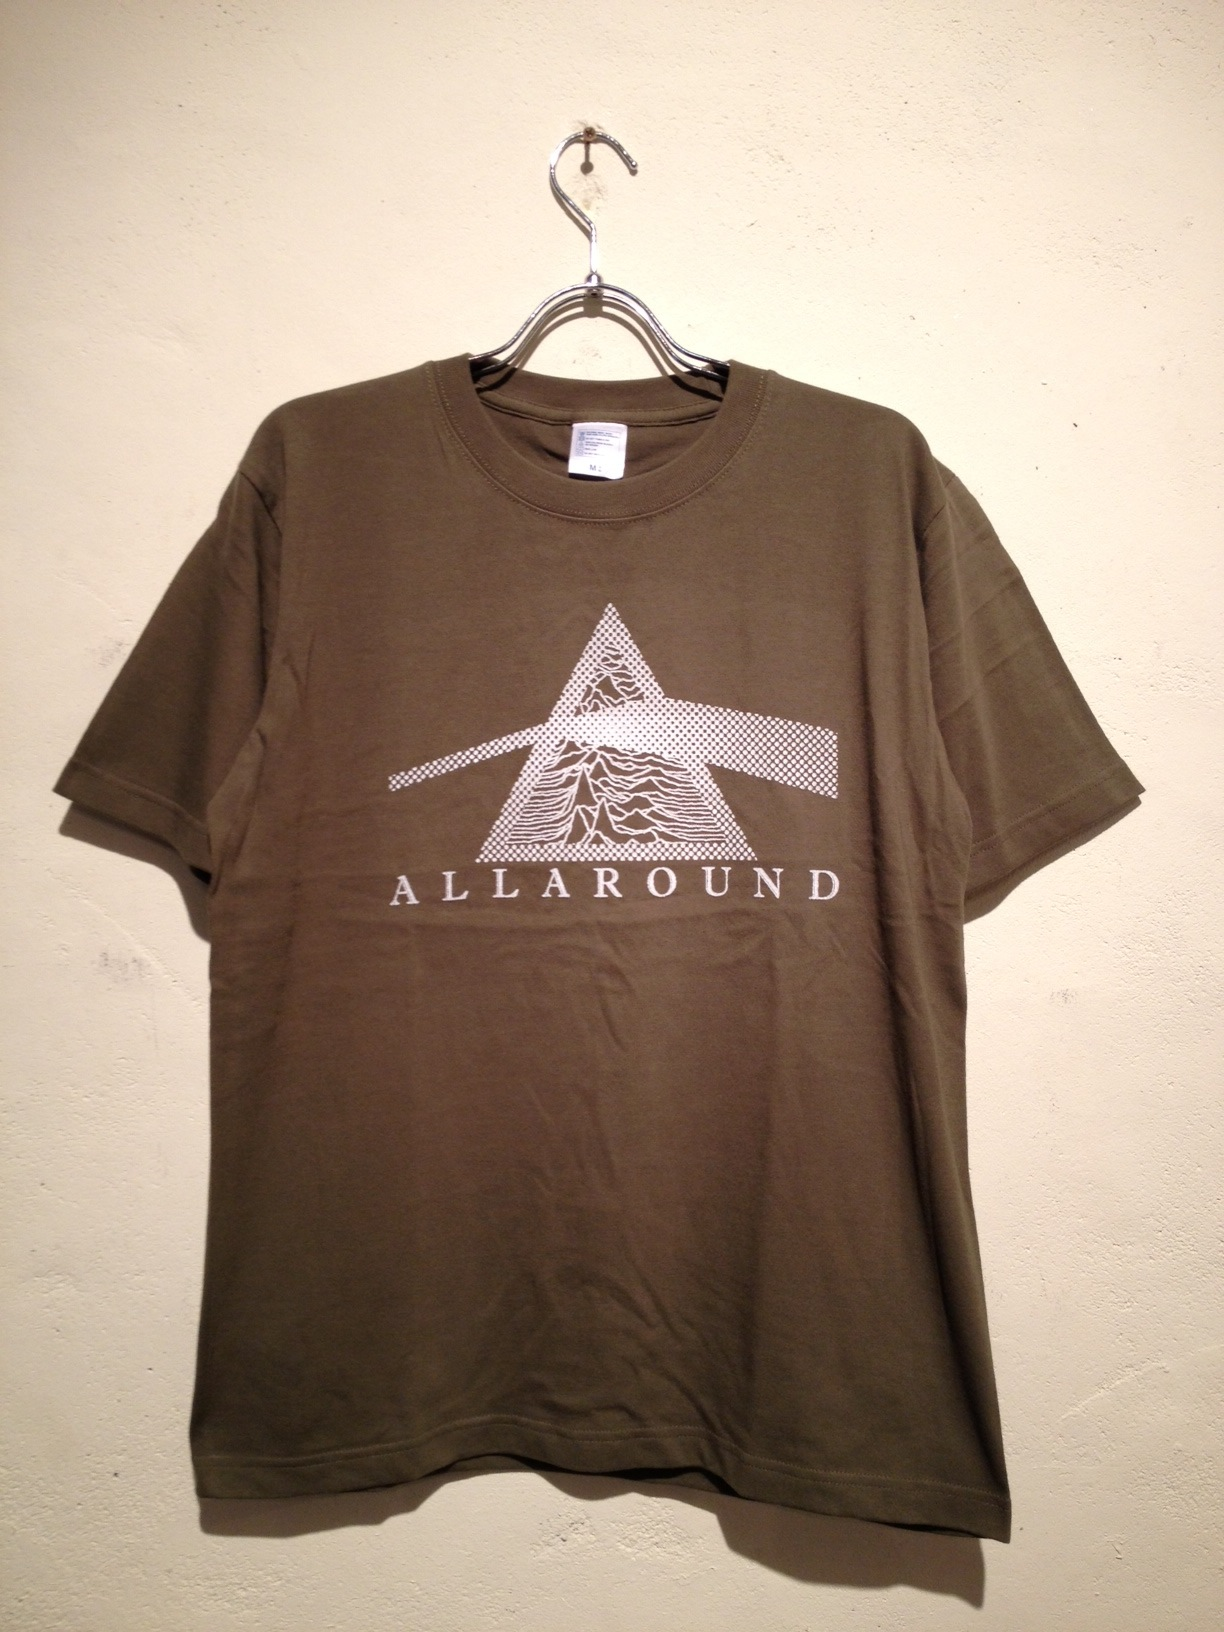 New icon S/S Tee(color version)_f0126931_17165645.jpg